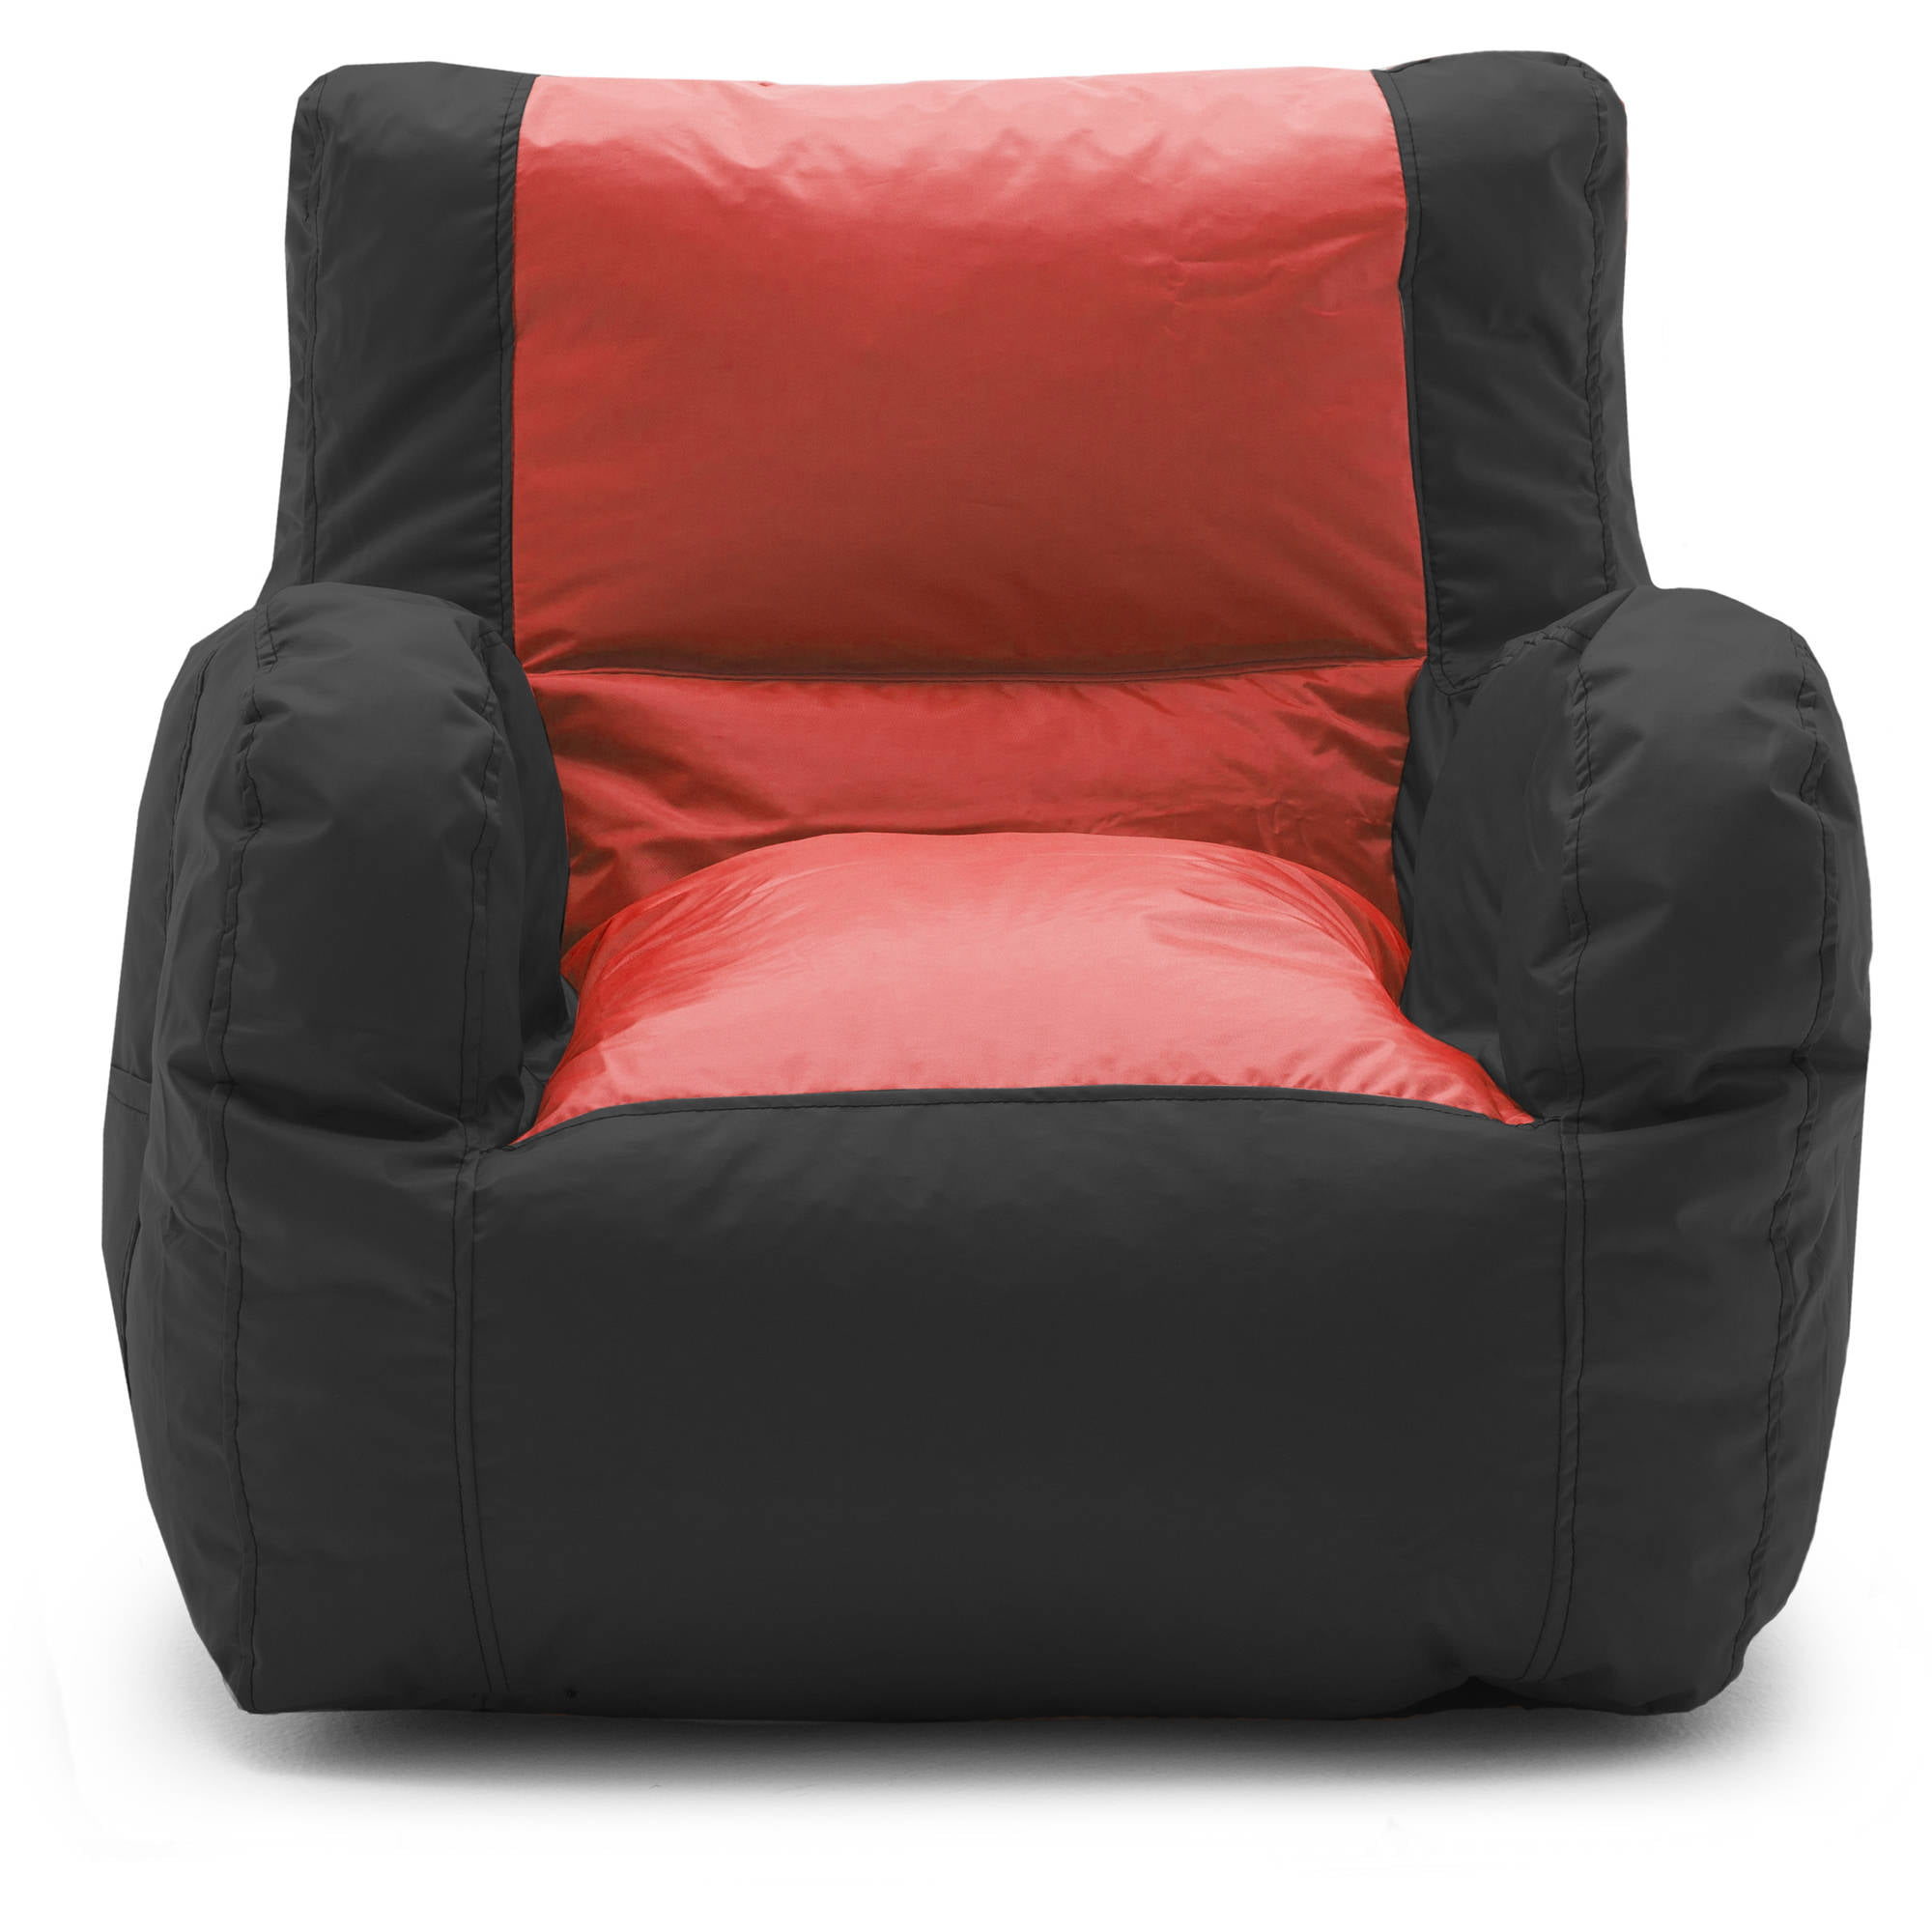 sc 1 st  Walmart & Big Joe SmartMax Duo Bean Bag Chair Multiple Colors - Walmart.com